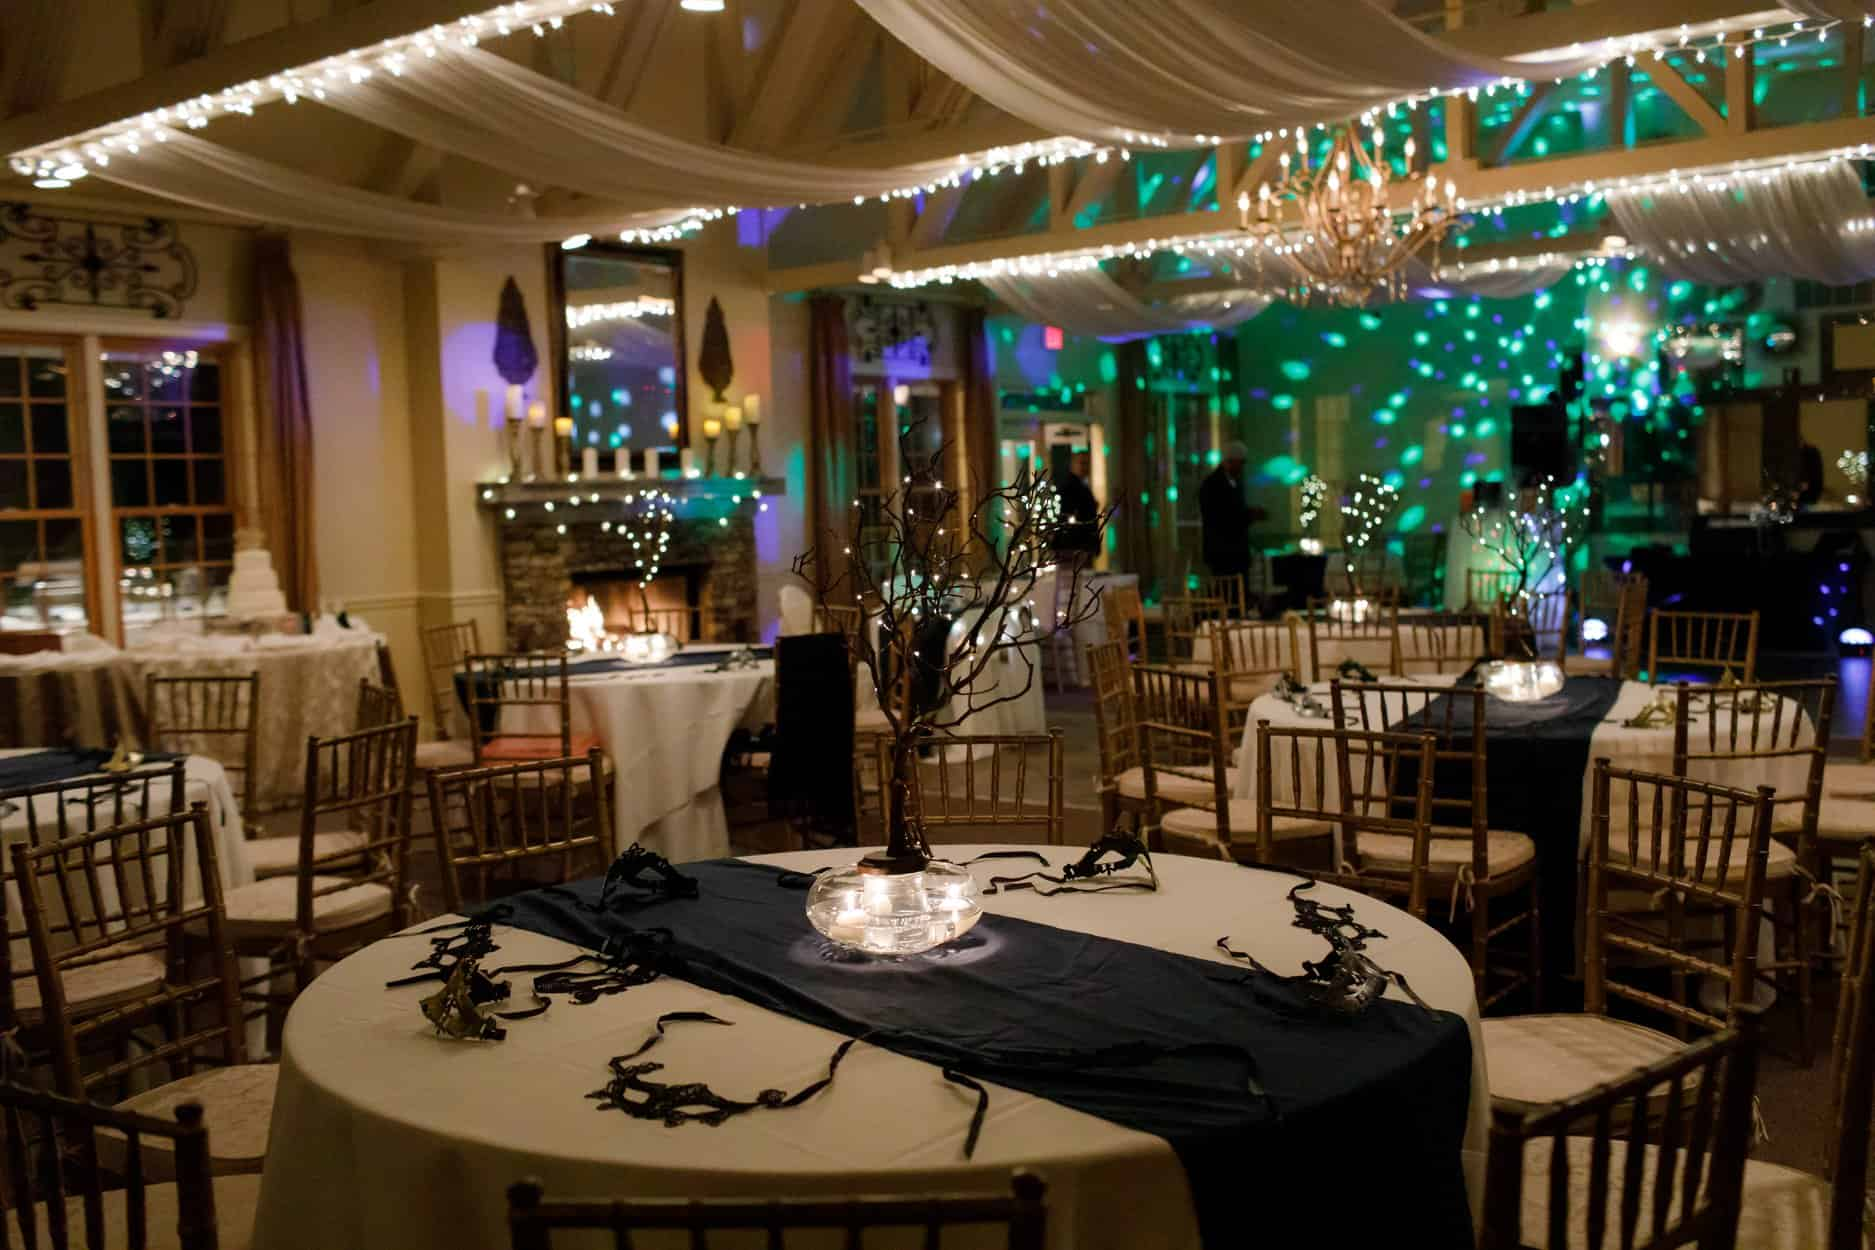 Wedding Reception Decor with Black Masks at Tables with tall branch centerpieces with lights and teal blue lighting on walls for dancing